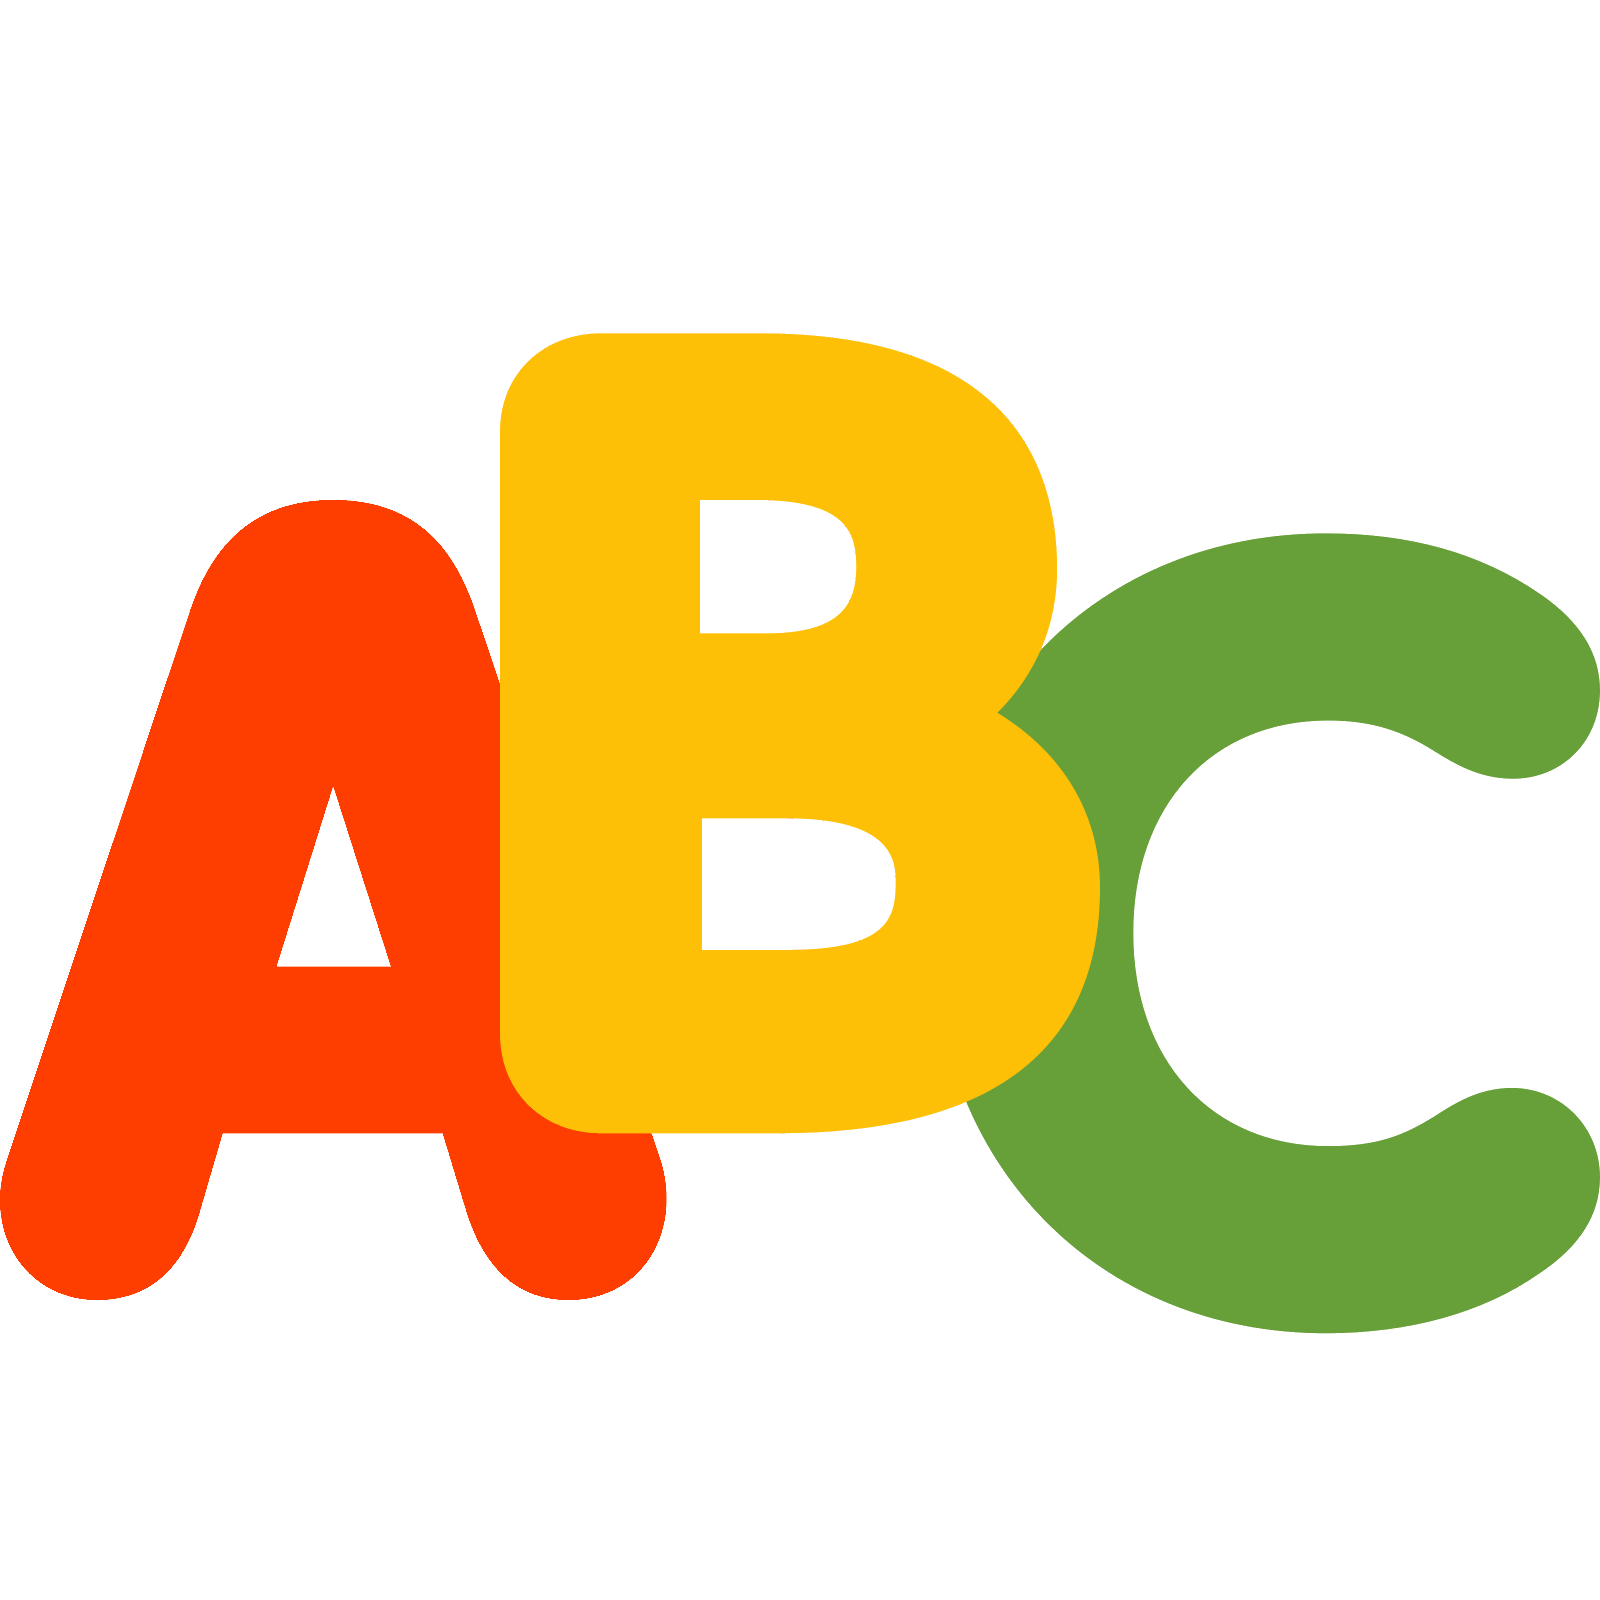 Download alphabet png. Abc icon free and